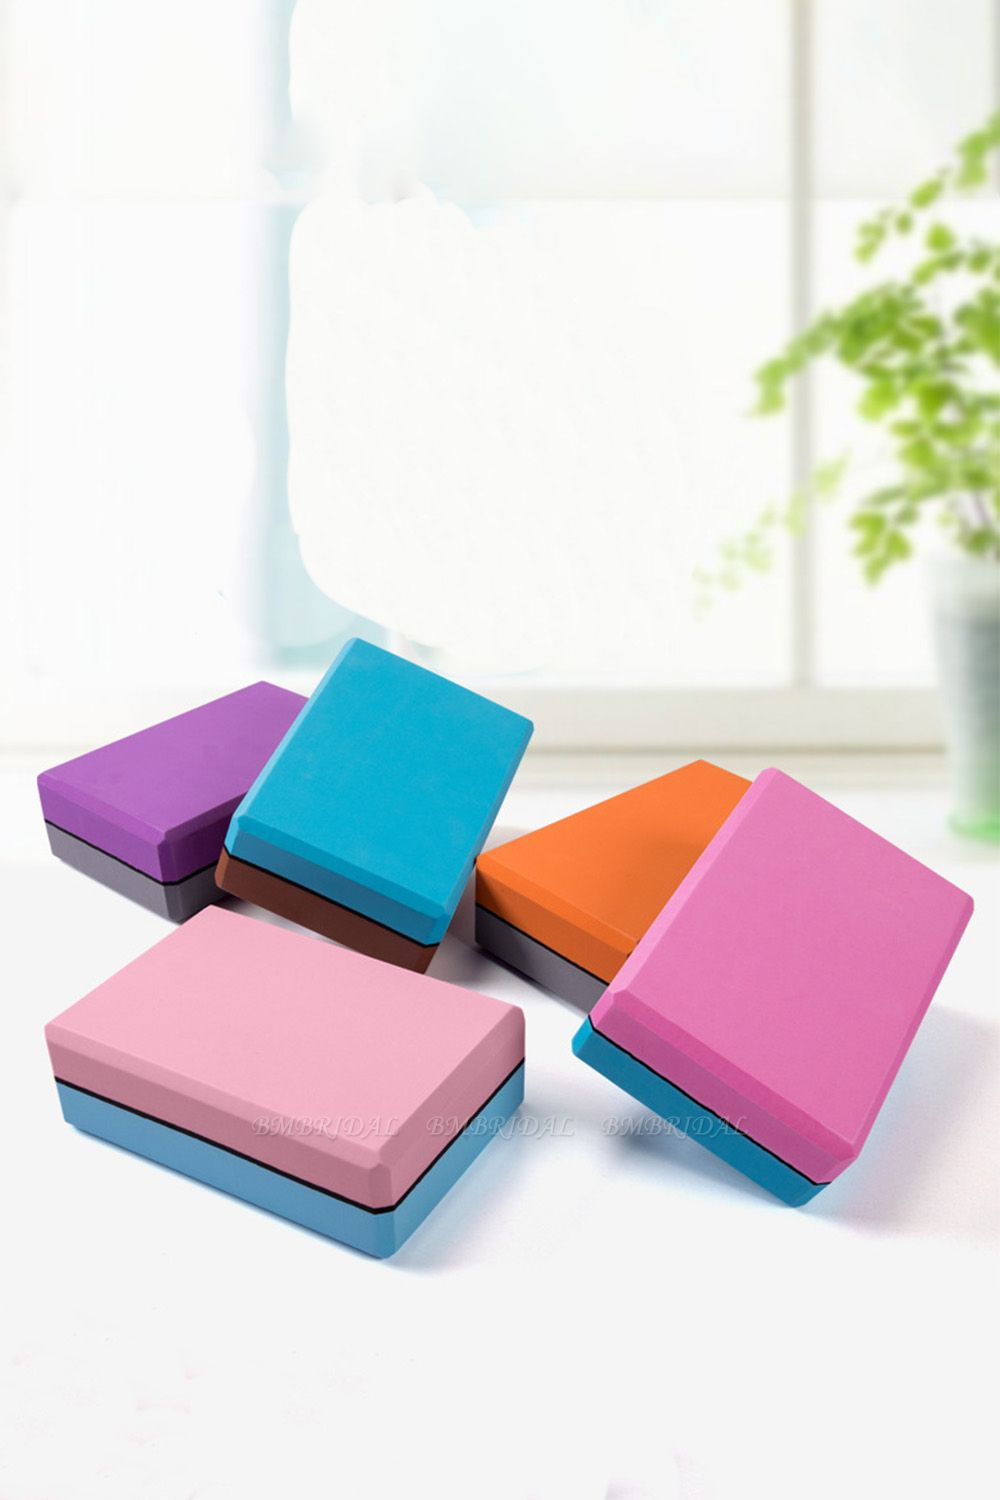 High Density EVA Yoga Block Foam Foaming Block Brick Exercises Fitness Tool Workout Stretching Aid Body Shaping Health Training